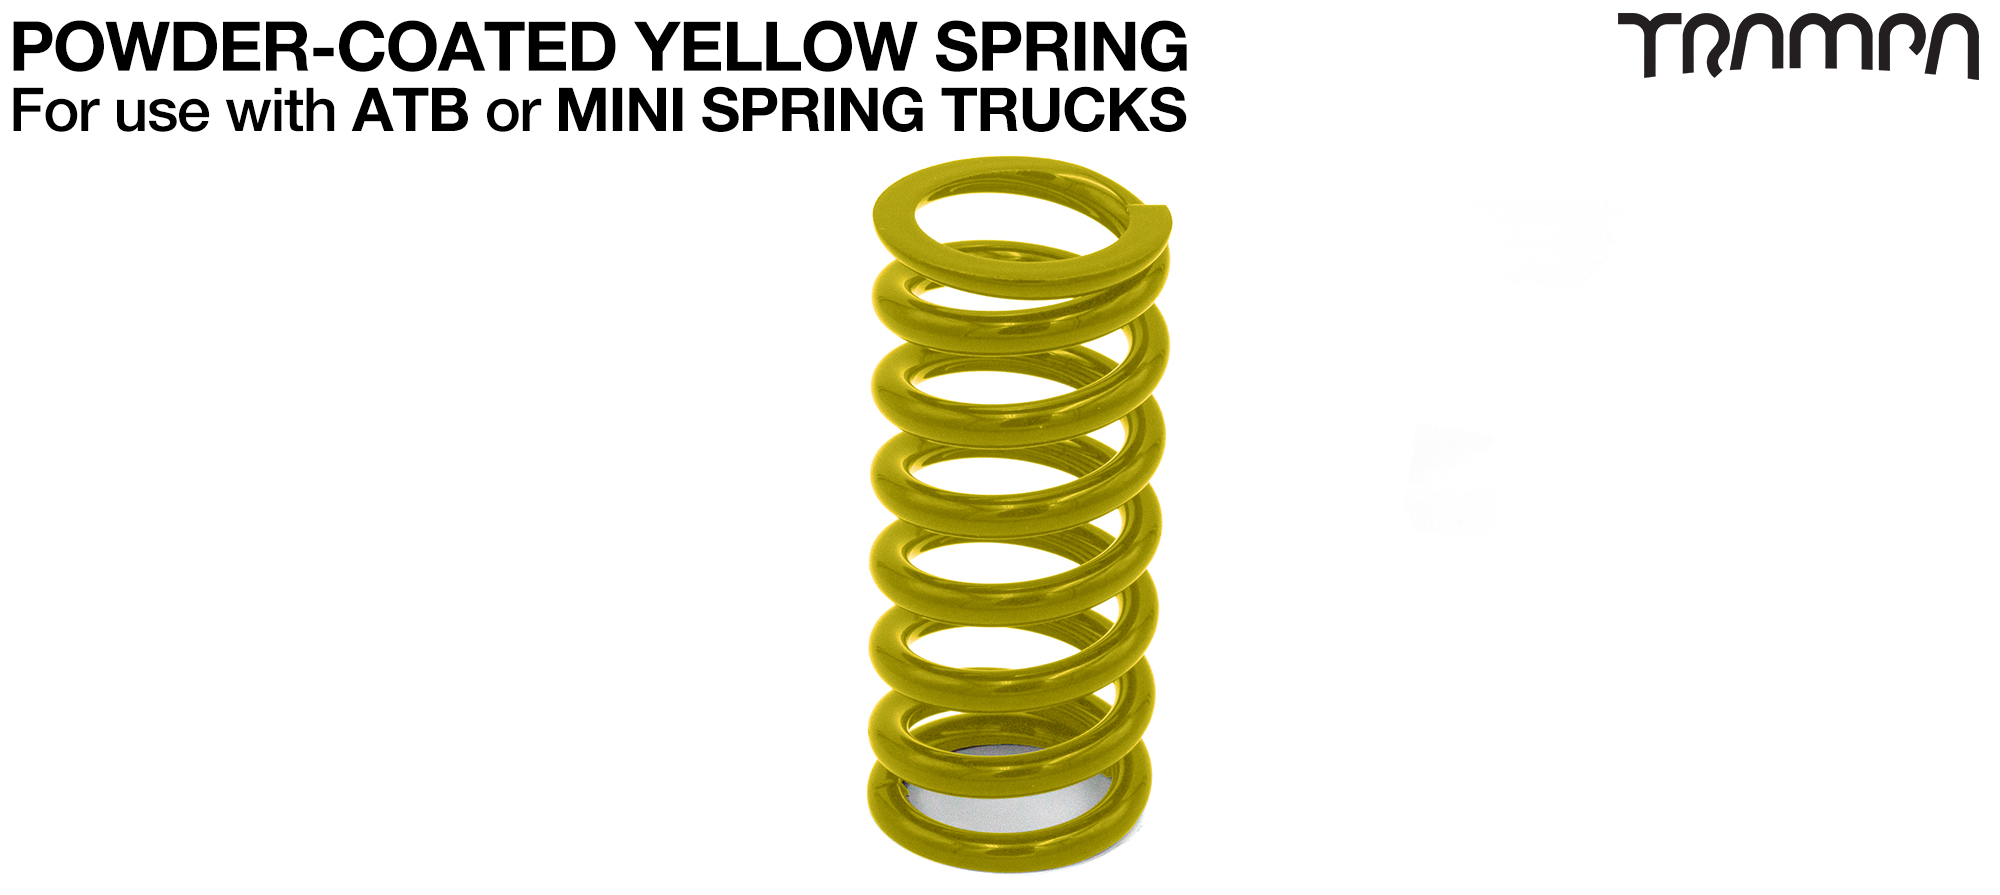 Steel Spring Powder Coated - YELLOW